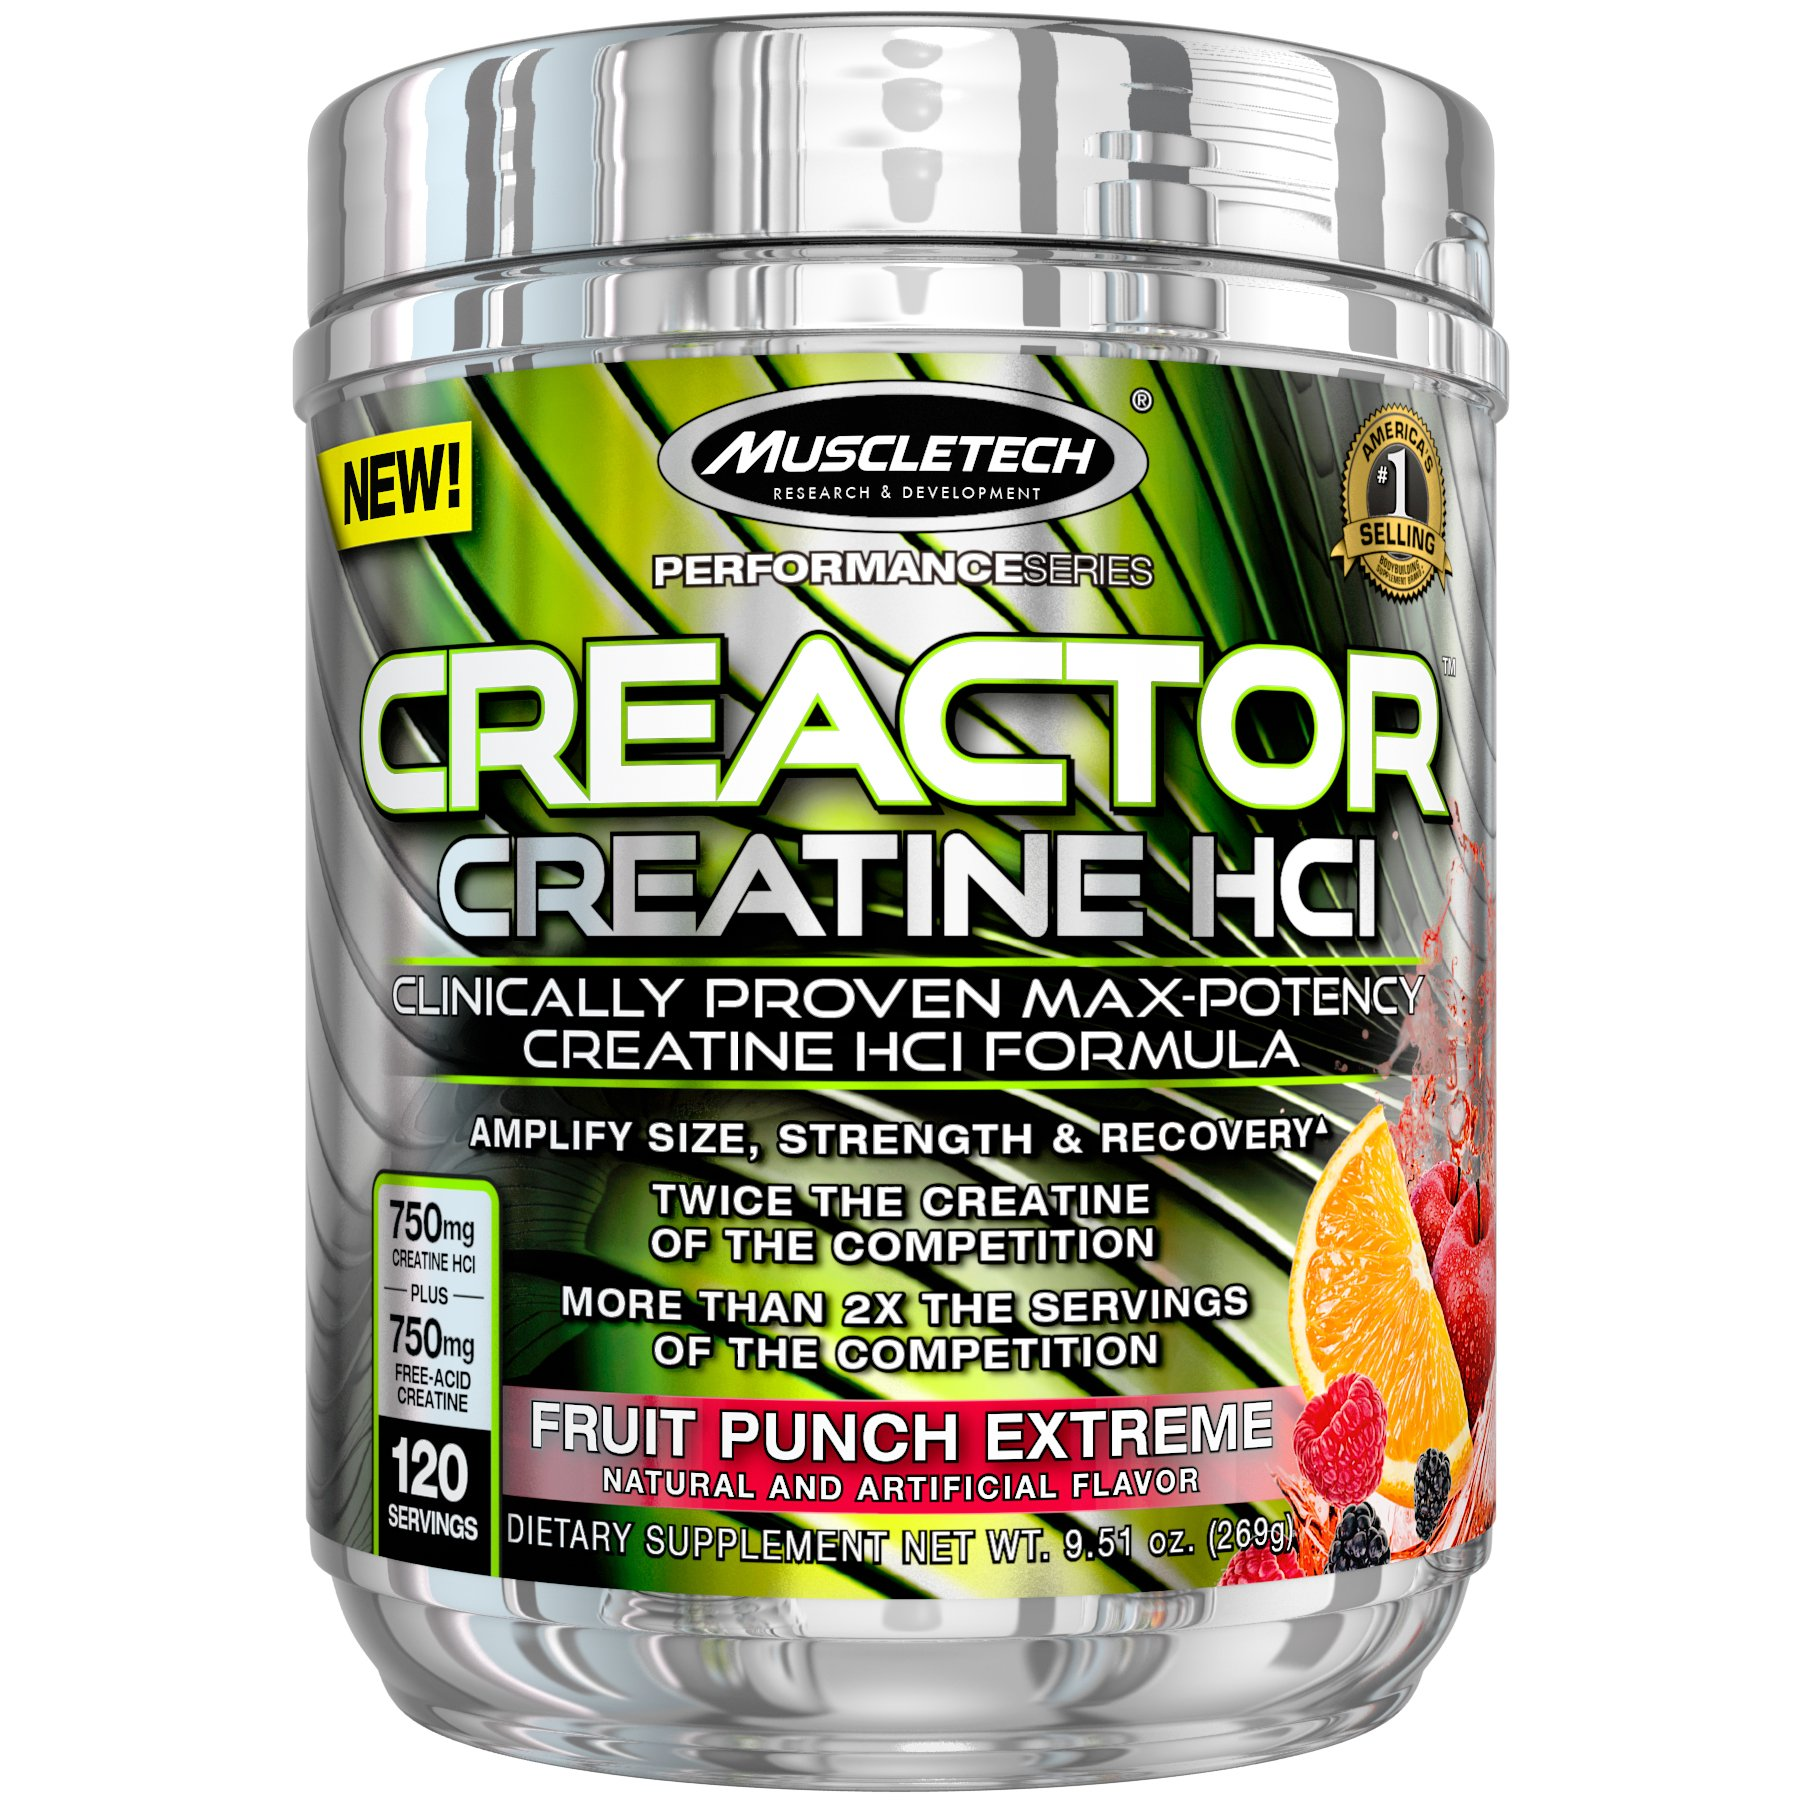 MuscleTech Creactor, Max Potency Creatine Powder, Micronized Creatine and Creatine HCl, Fruit Punch Extreme, 120 Servings (269g)